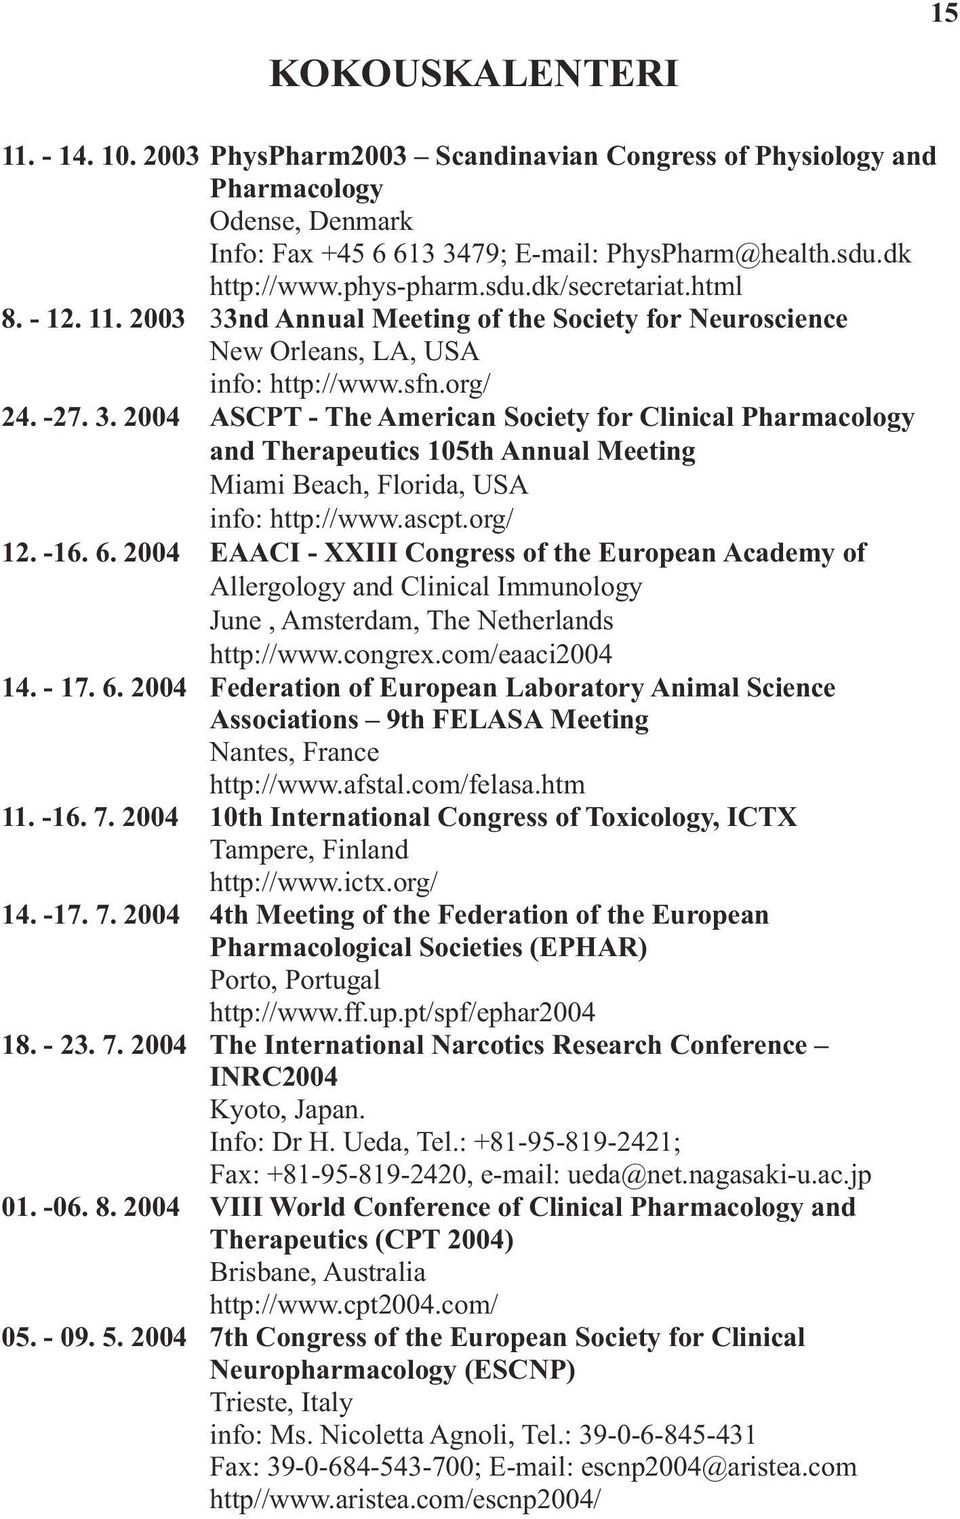 ascpt.org/ 12. -16. 6. 2004 EAACI - XXIII Congress of the European Academy of Allergology and Clinical Immunology June, Amsterdam, The Netherlands http://www.congrex.com/eaaci2004 14. - 17. 6. 2004 Federation of European Laboratory Animal Science Associations 9th FELASA Meeting Nantes, France http://www.